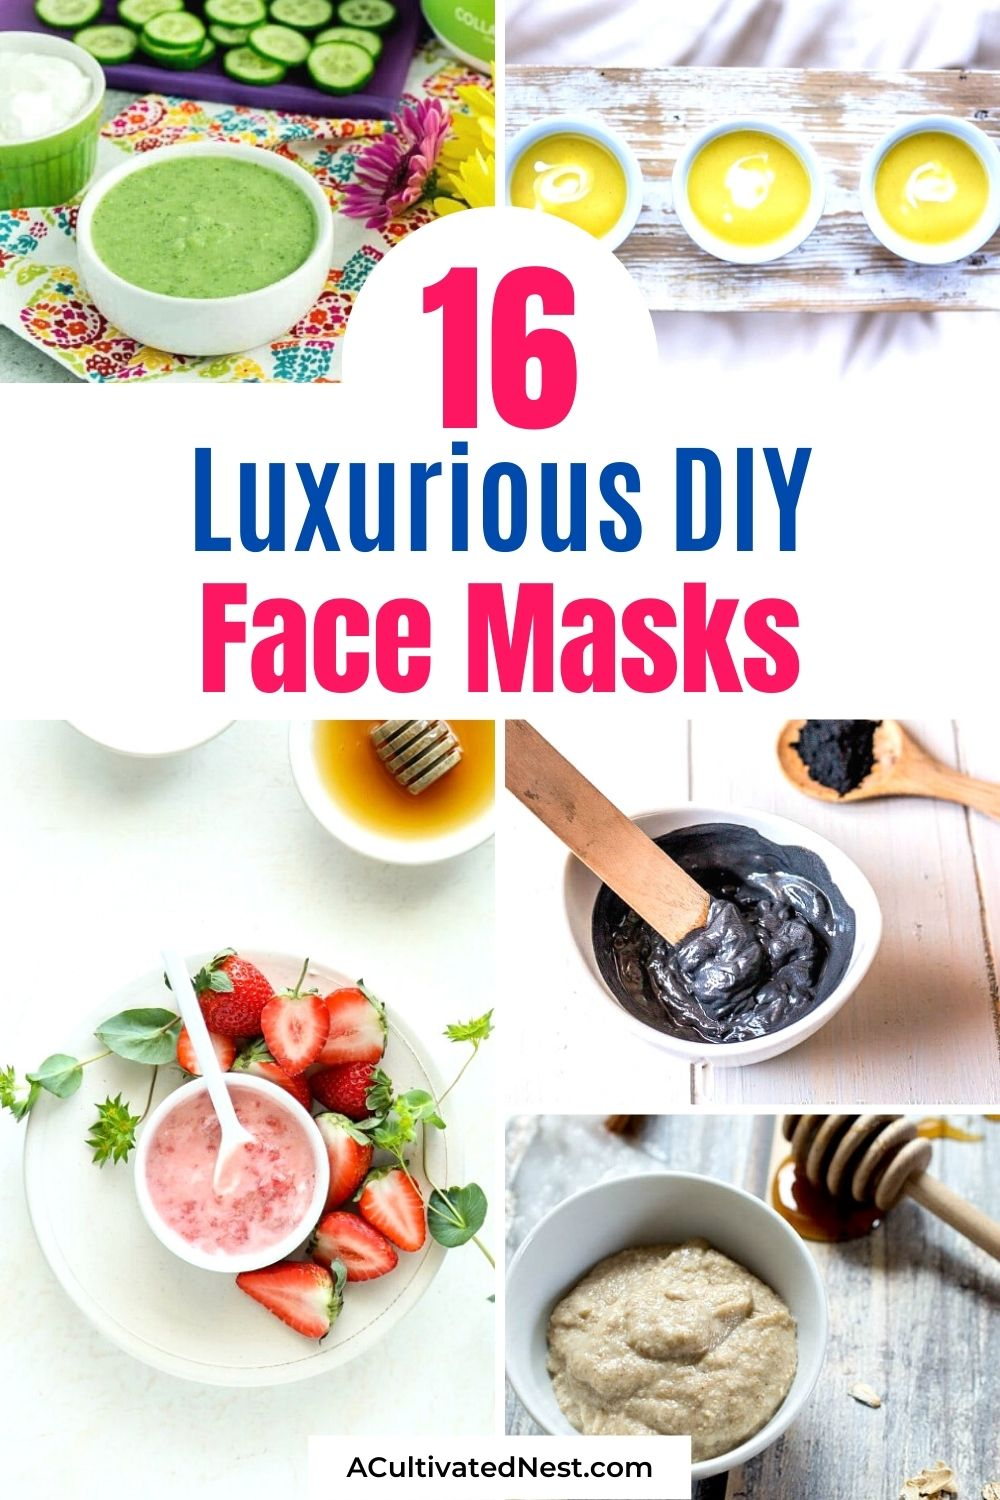 16 Luxurious Homemade Face Masks- 16 Homemade Face Masks- Relax and nourish your skin at the same time with these easy DIY face masks! These also make lovely homemade gifts!   all-natural DIY face masks, do it yourself skincare, DIY gift ideas, #faceMask #diyGift #homemadeBeautyProducts #DIY #ACultivatedNest